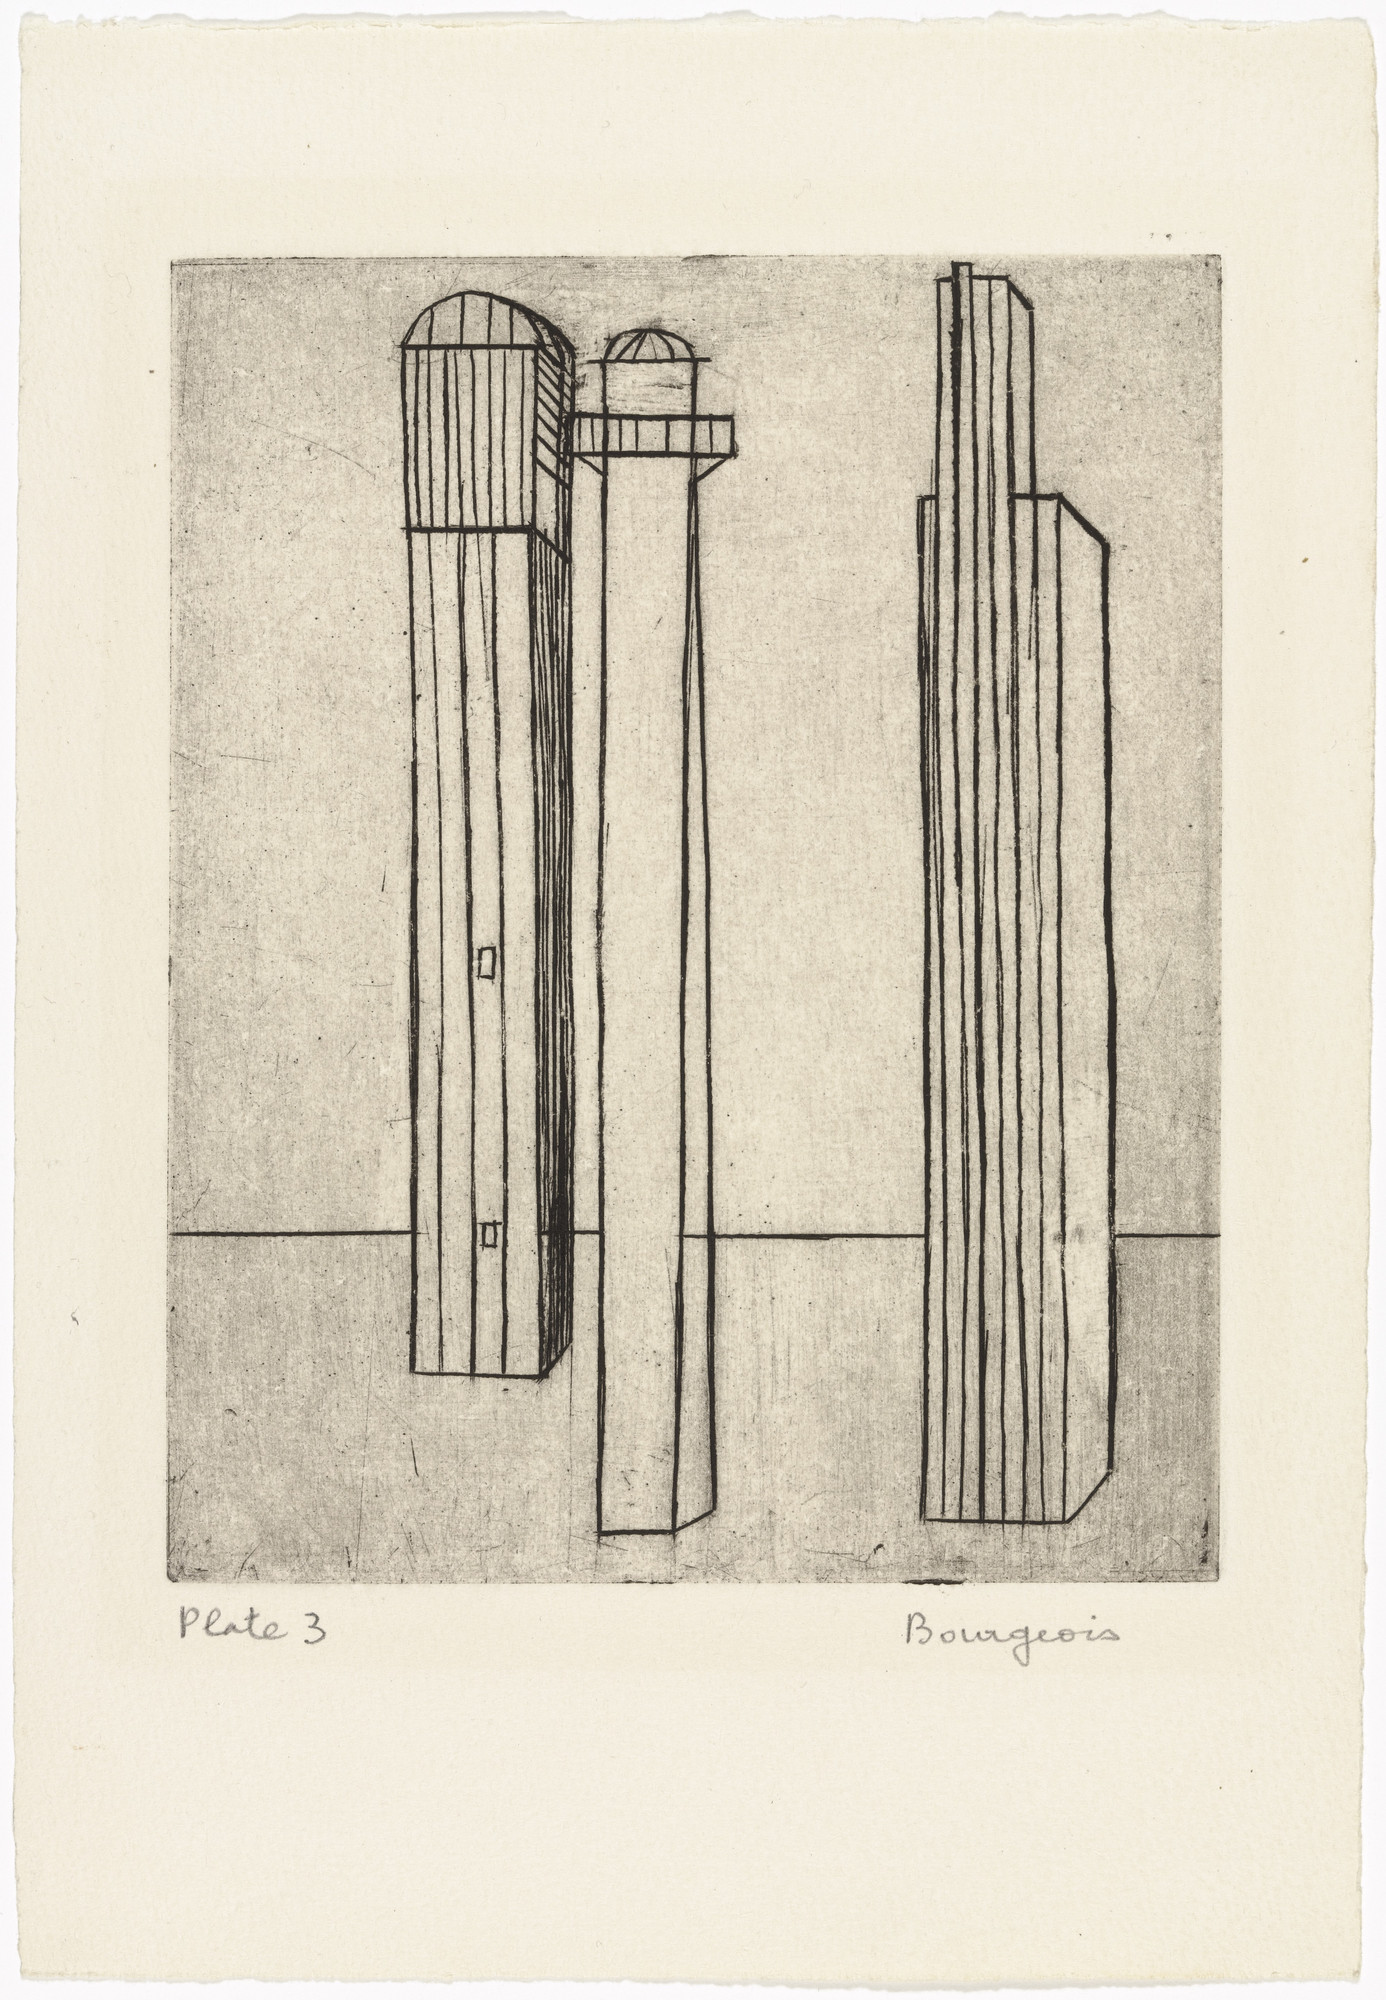 Louise Bourgeois. Plate 3 of 9, from the illustrated book, He Disappeared into Complete Silence, first edition (Example 1). 1947